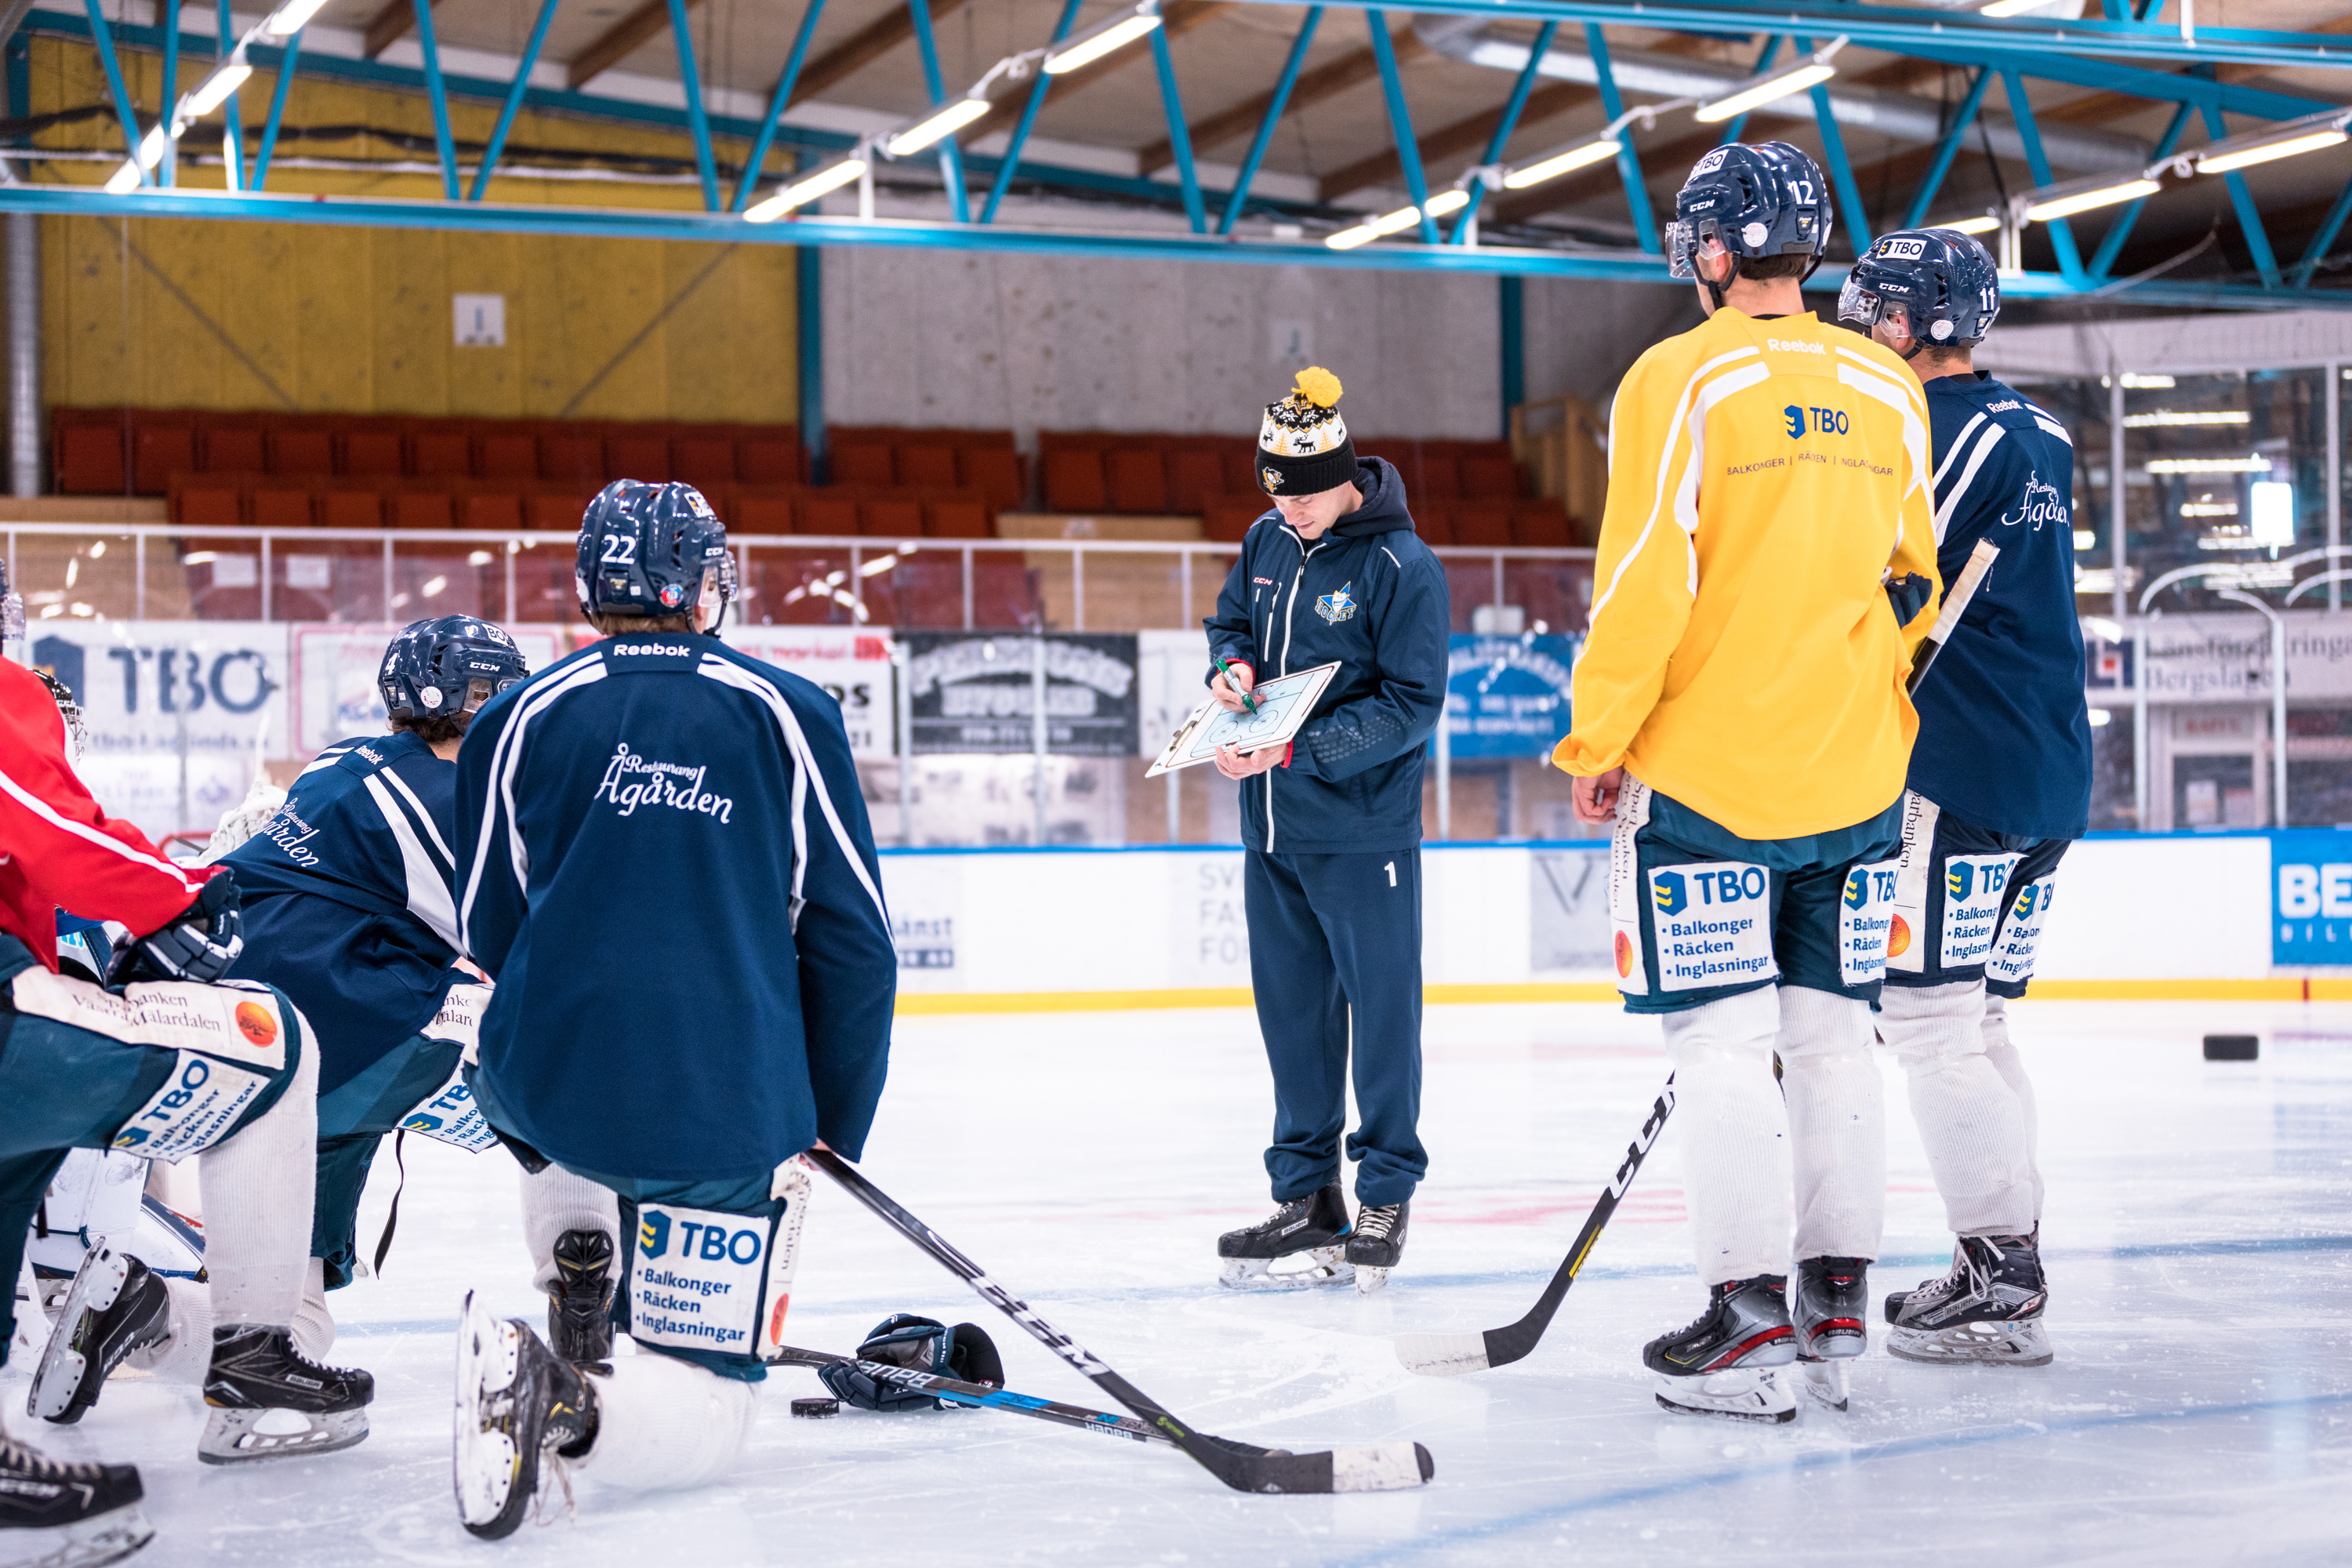 An image featuring Alfons, VD at AF Training & Rehabilitation, when he instructs a professional hockey team.